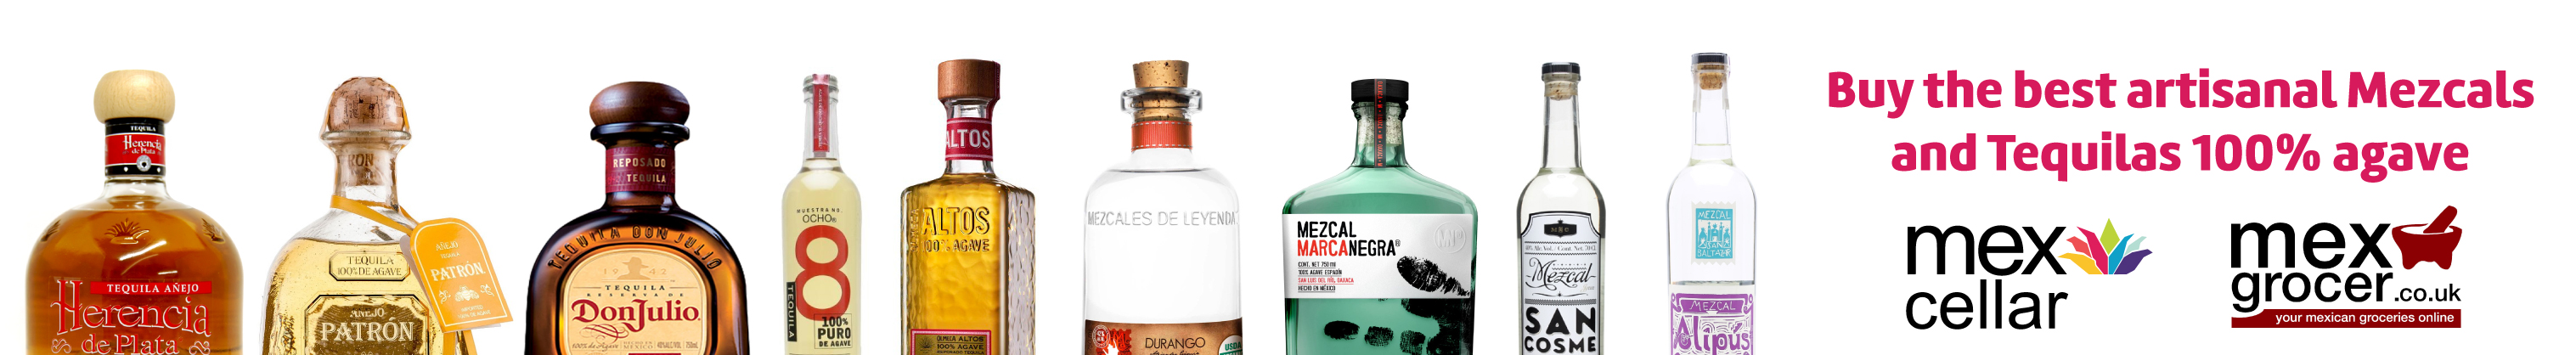 Tequila Mezcal Festival Mexgrocer Mexcellar UK